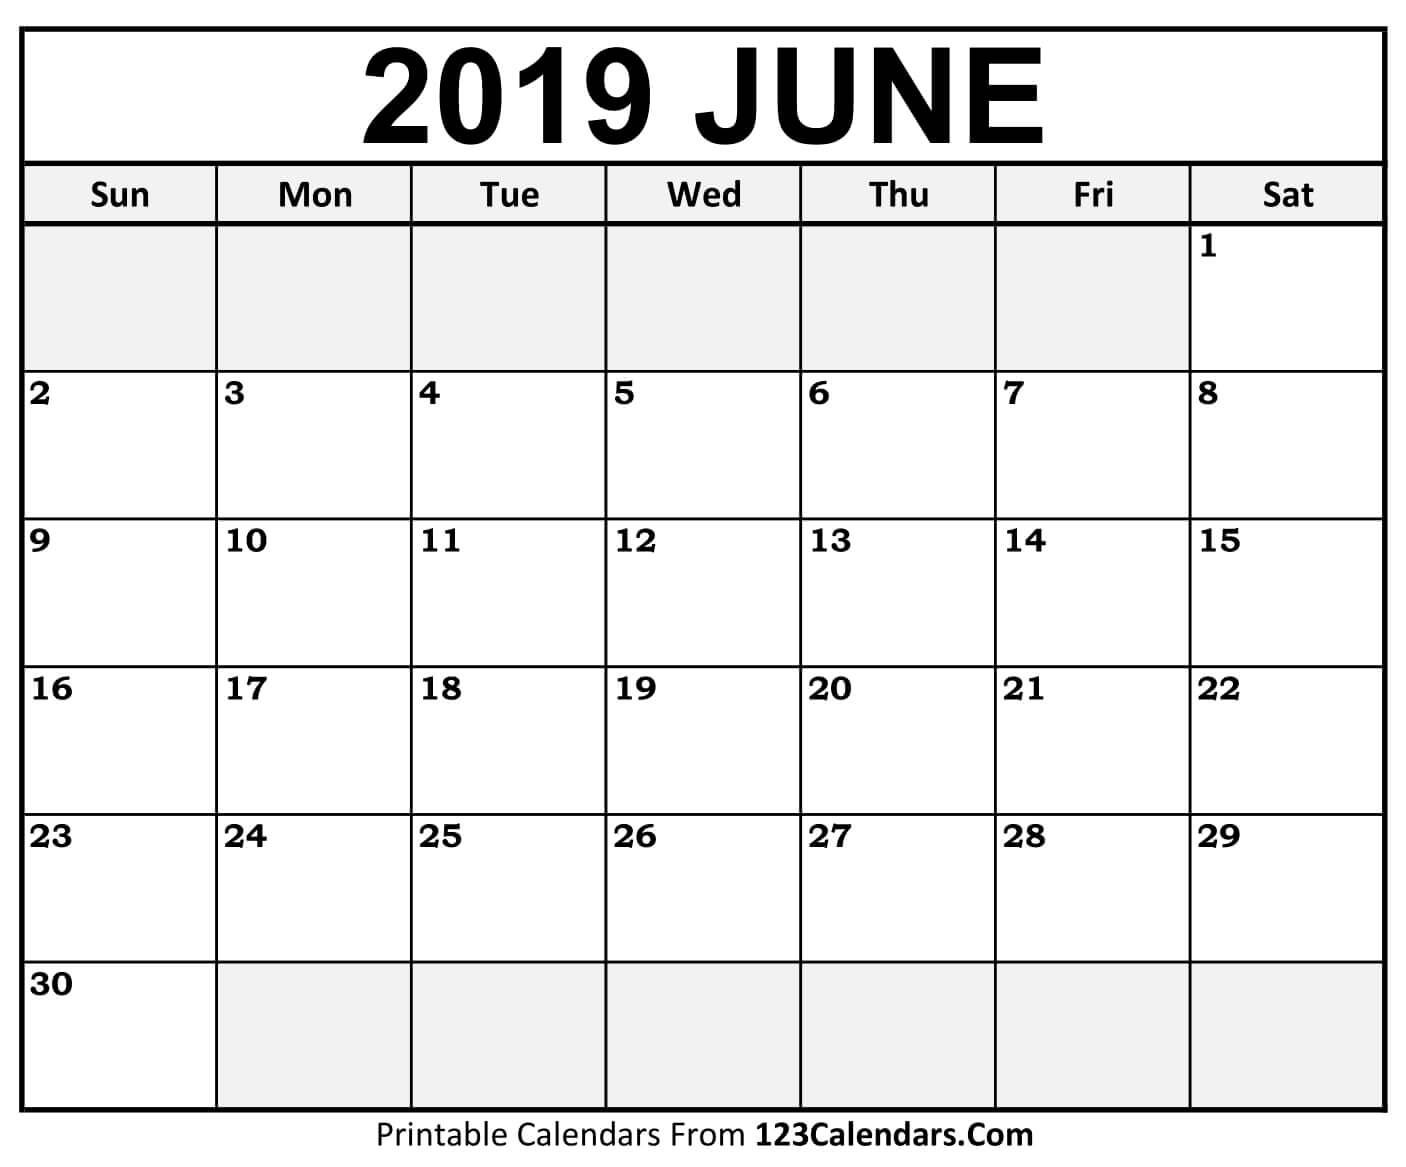 Printable June 2019 Calendar Templates - 123Calendars Calendar 2019 June